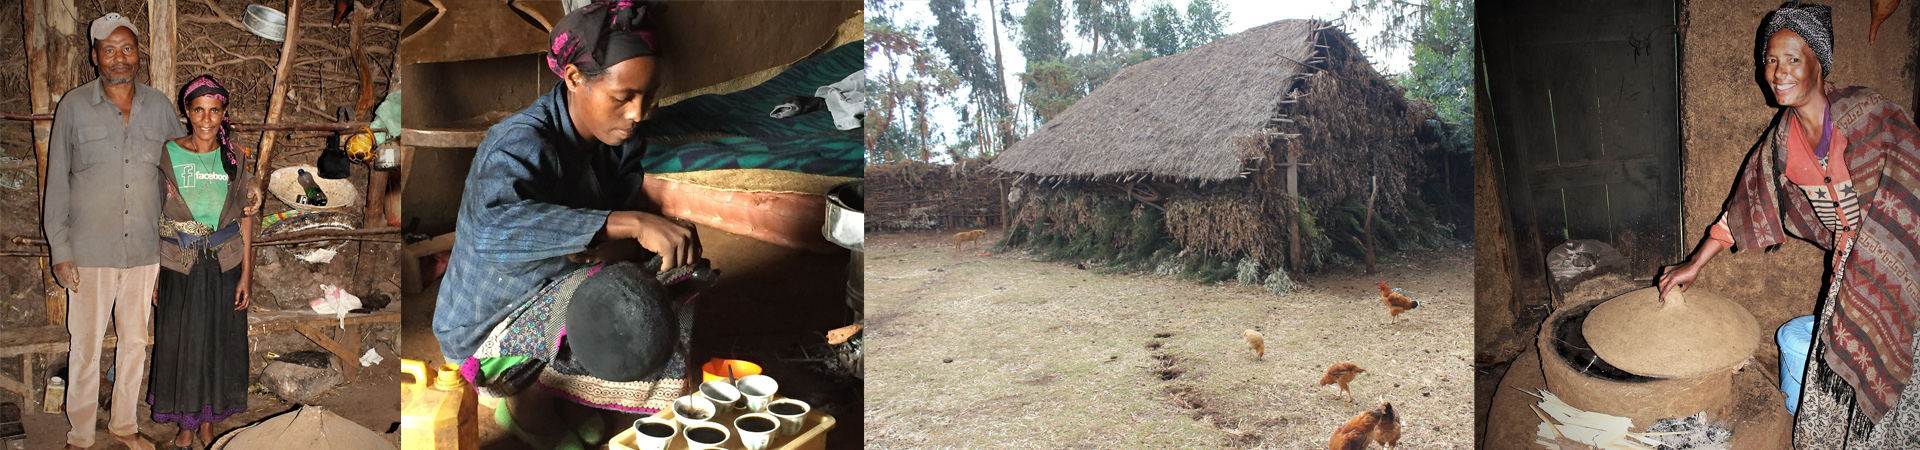 Sustainable Travel Cookstoves Project